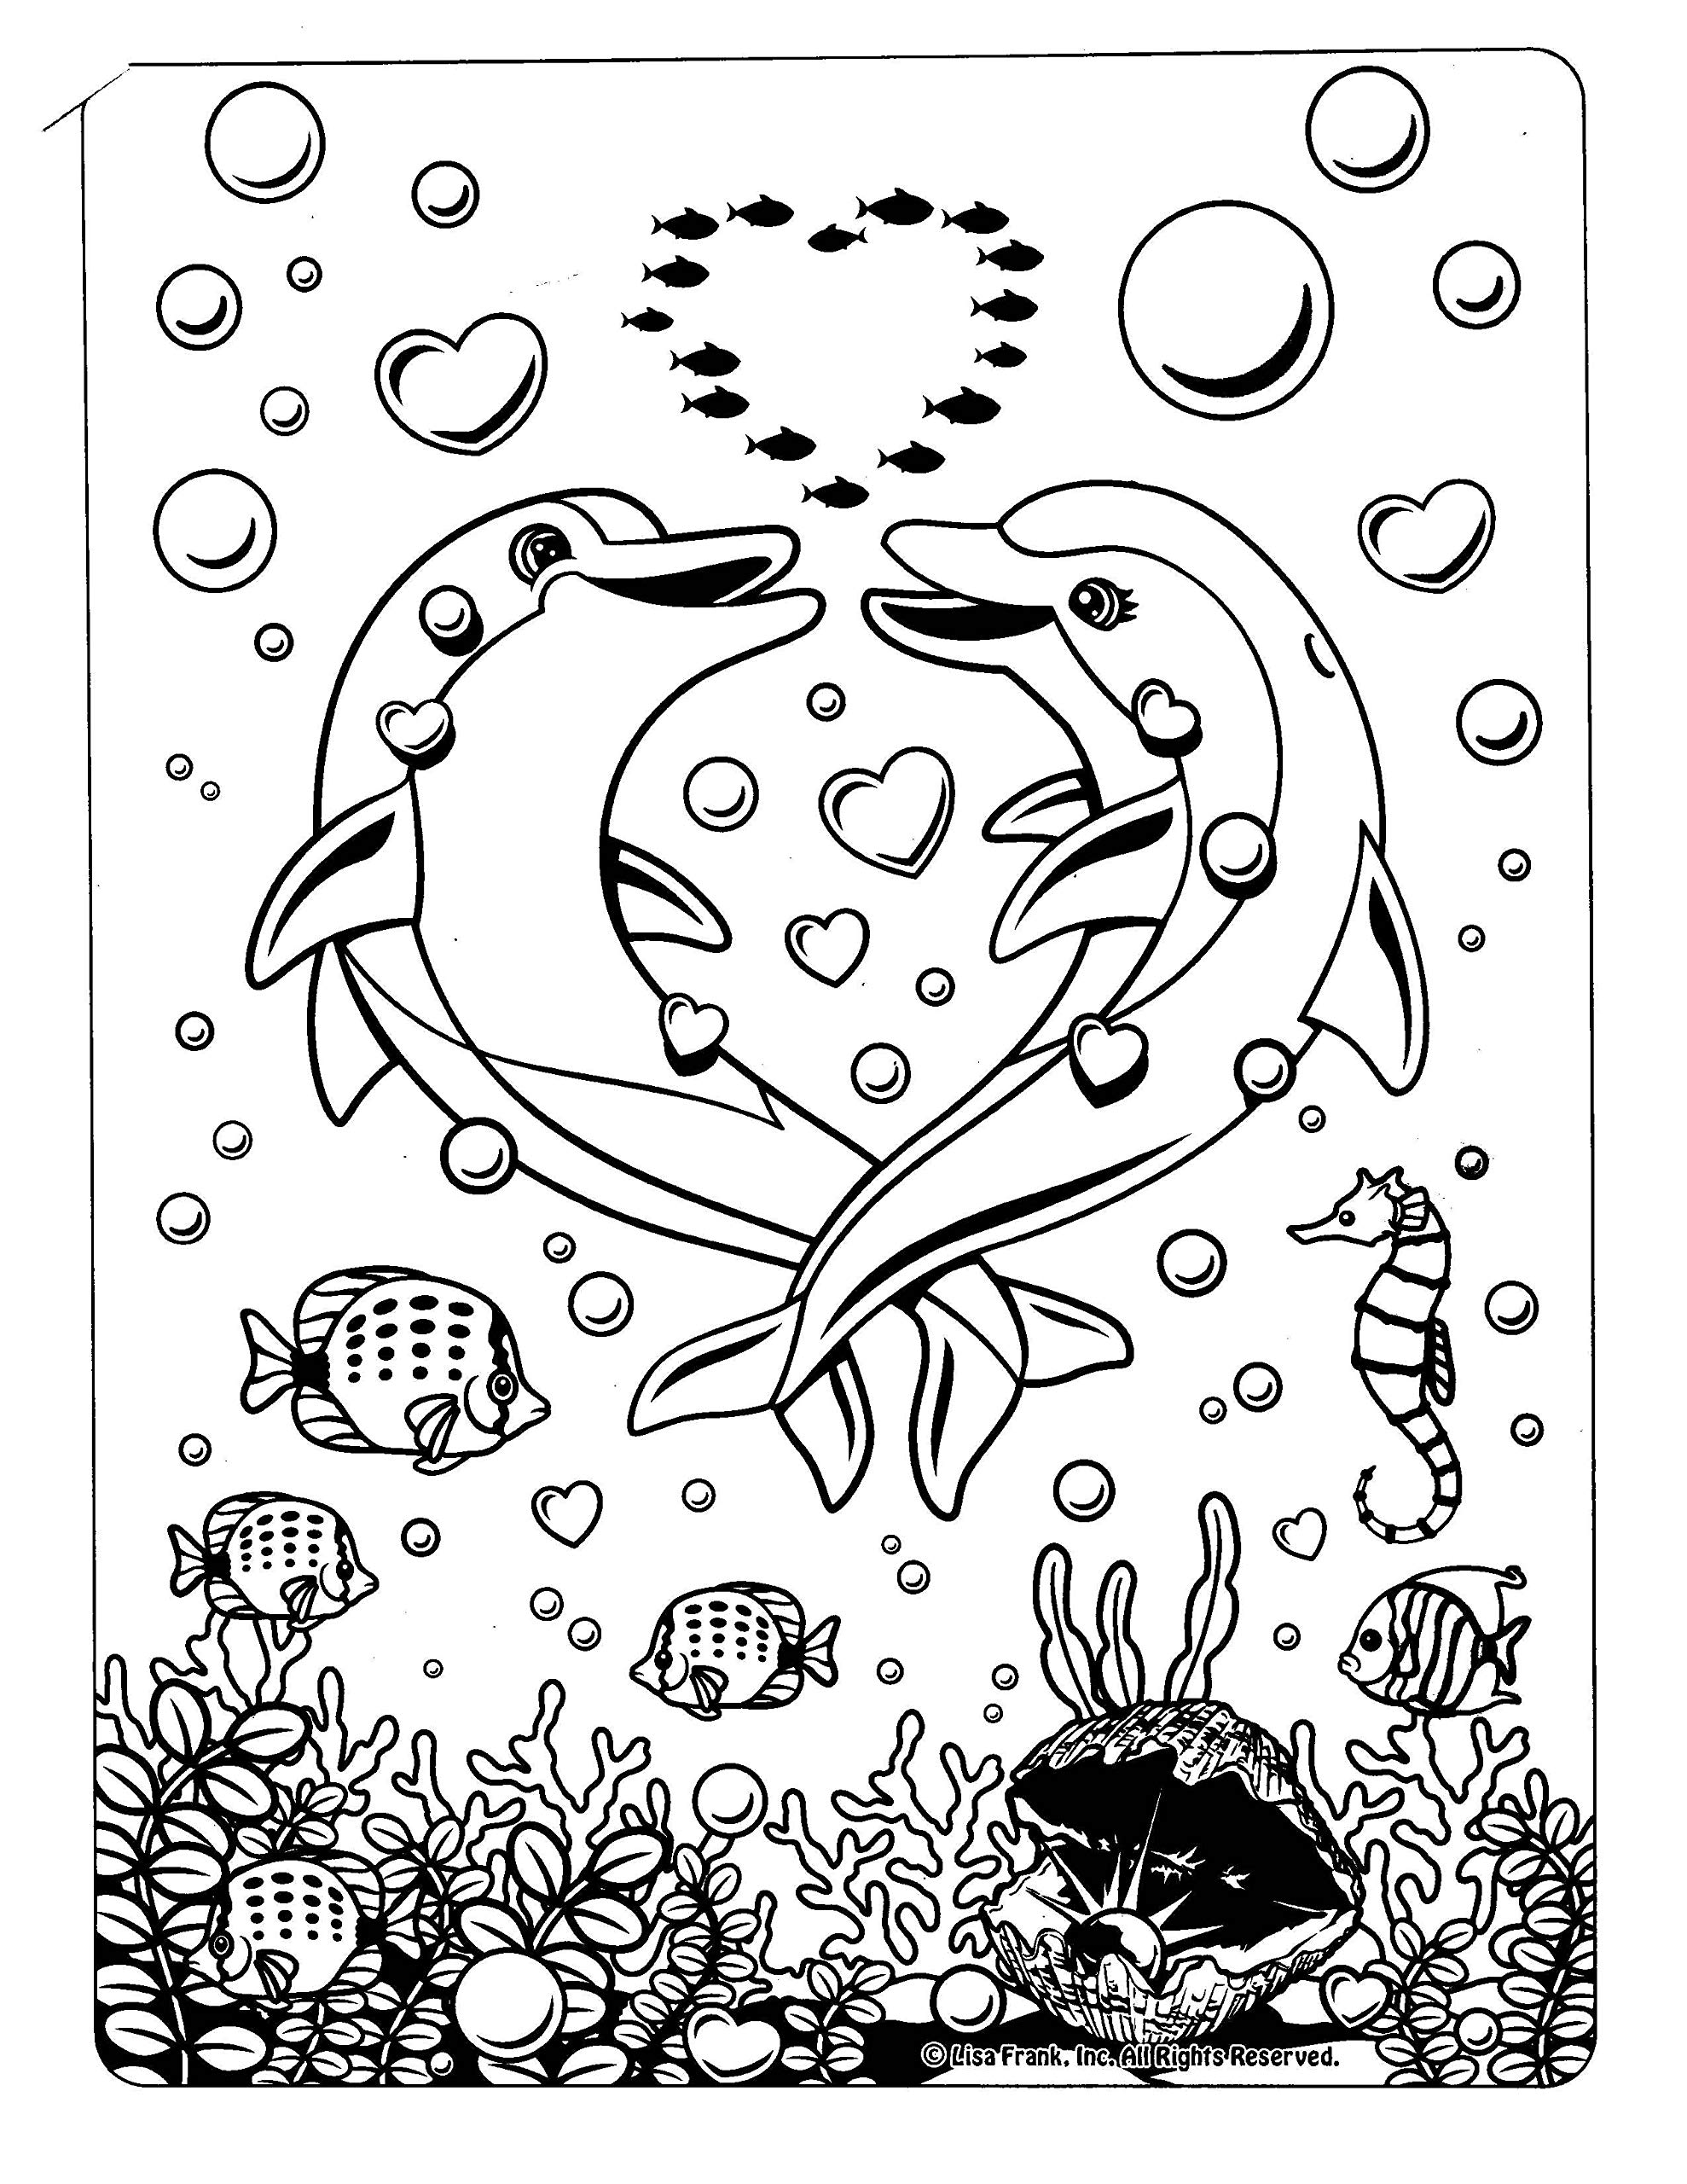 Hollywood Bear Lisa Frank Coloring Page - Free Printable Coloring ... | 2560x1978